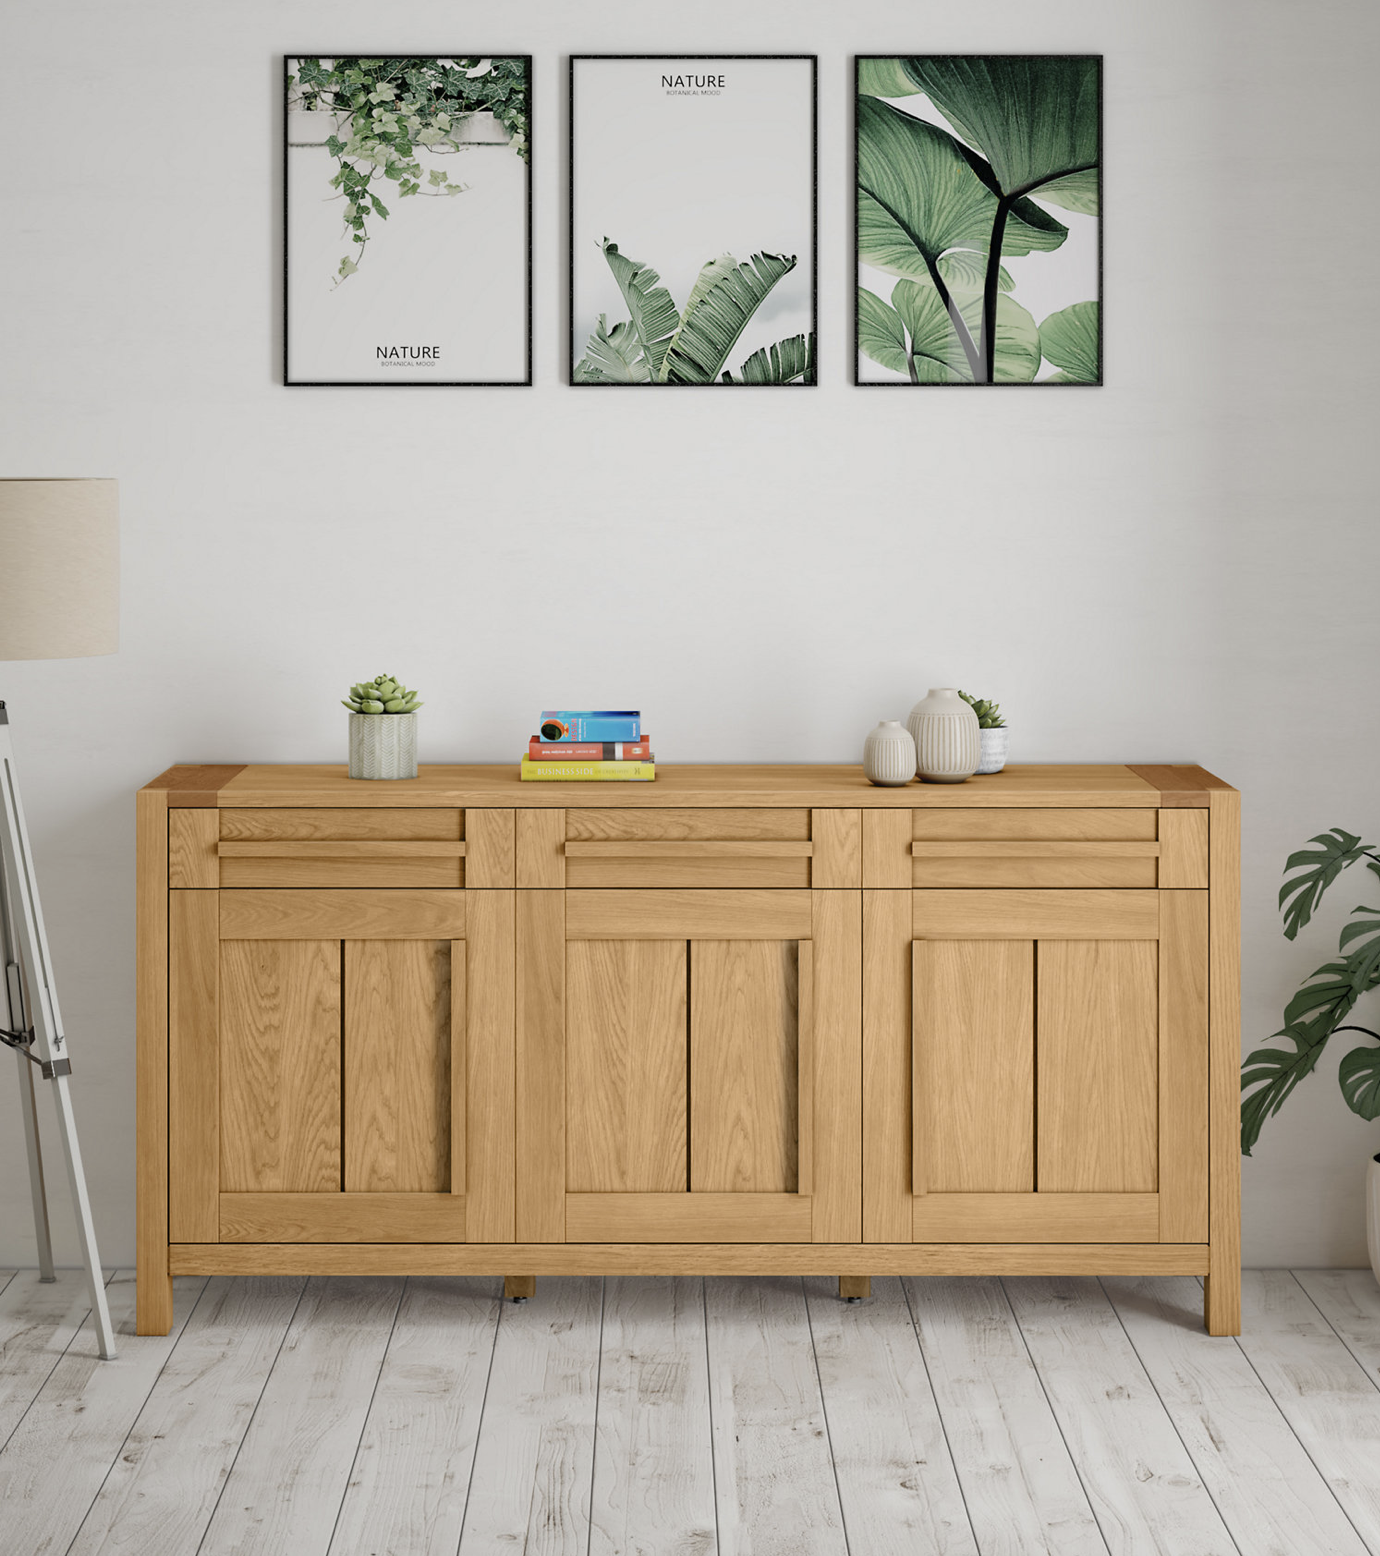 Sonoma sideboard, oak and oak veneer, £799 at M&S